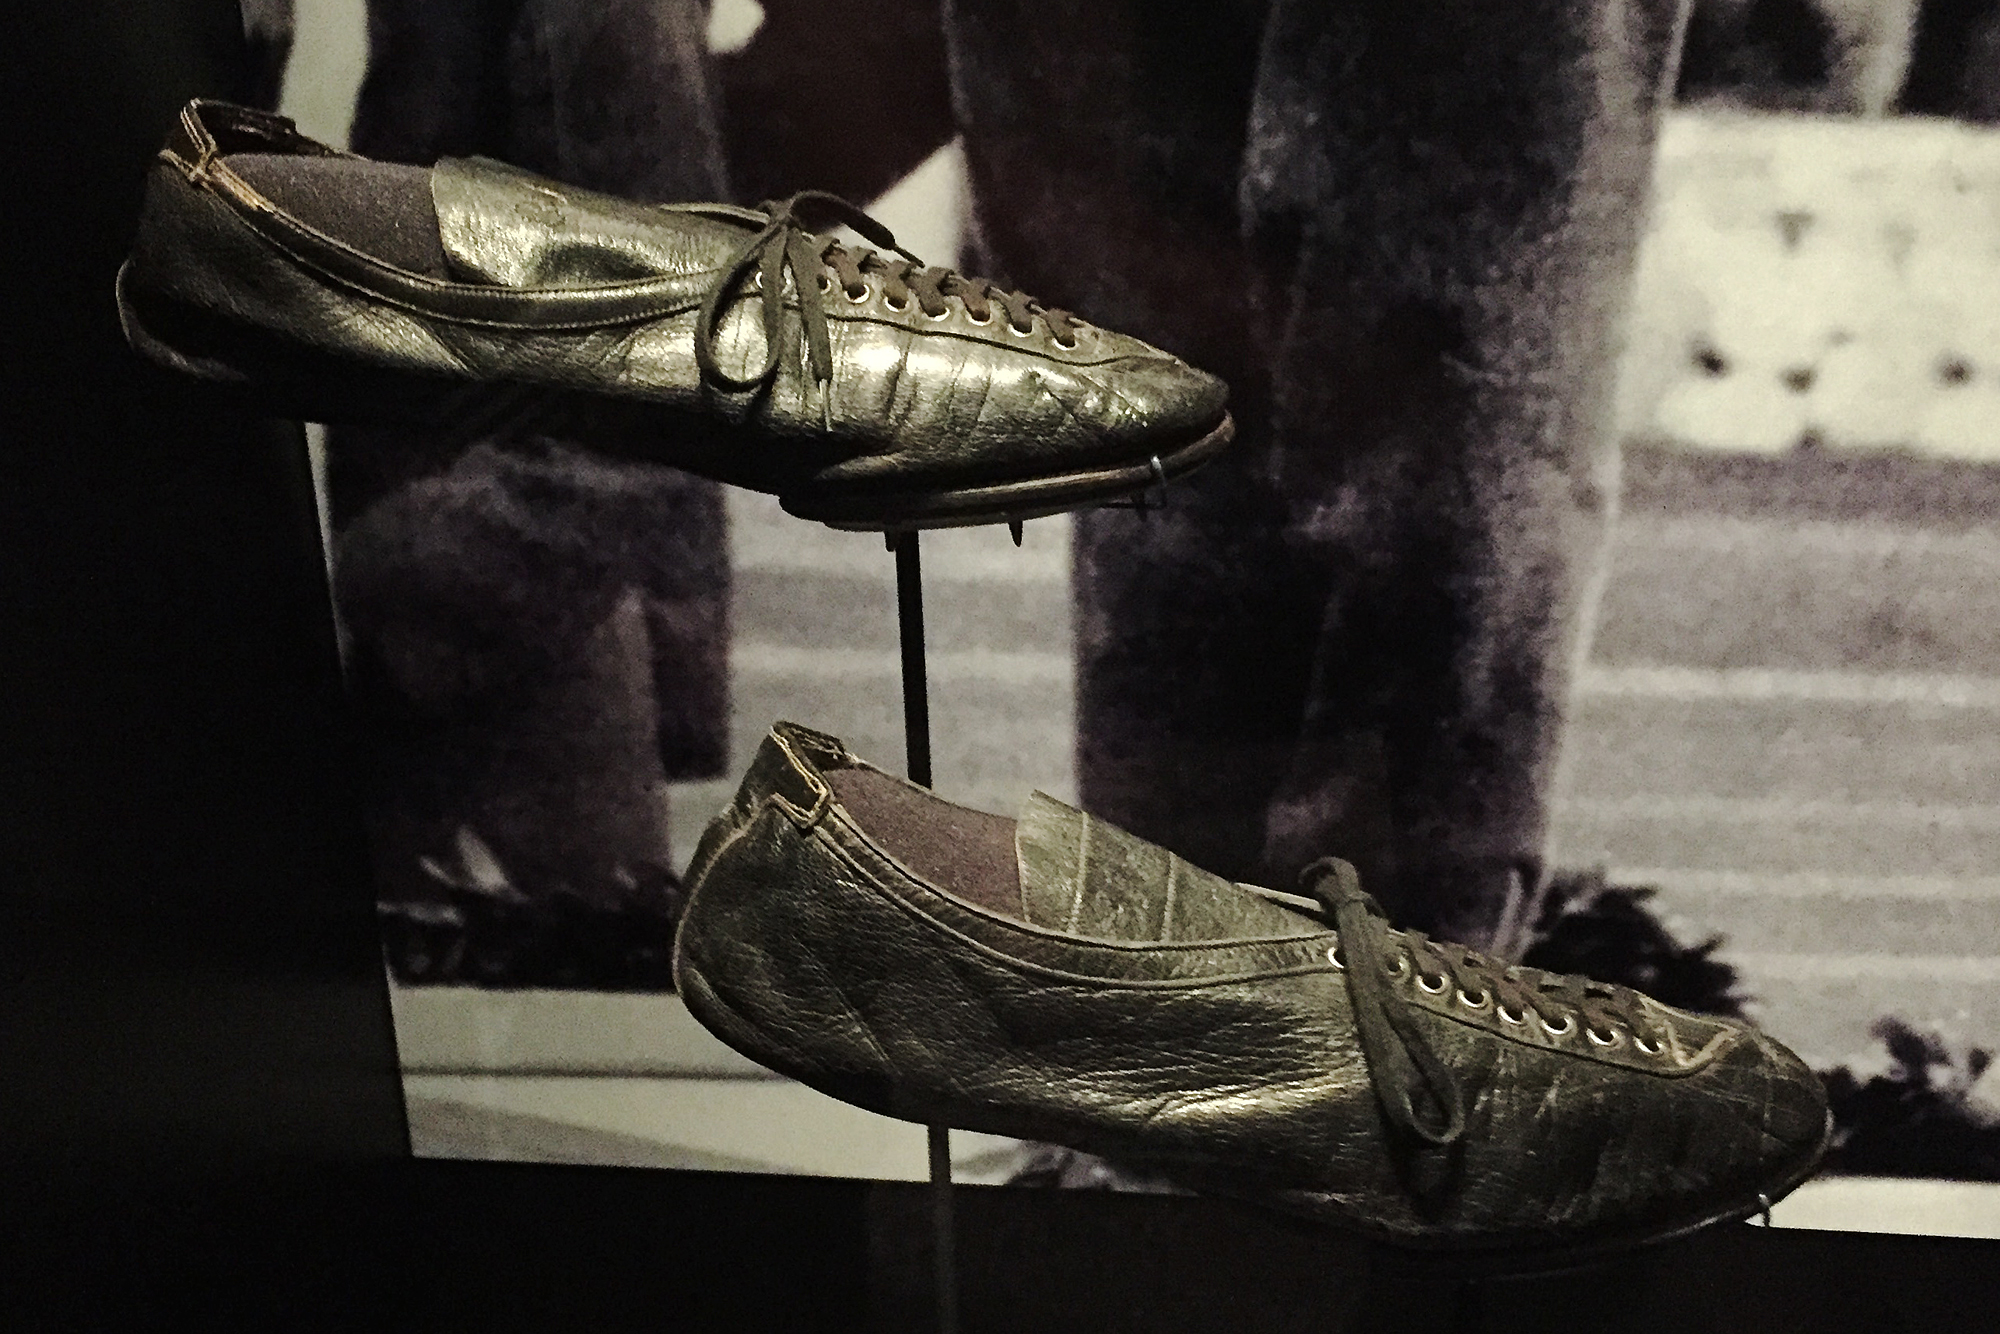 Cleats worn by Jesse Owens during the 1936 Olympics in Germany that came from the Jock Michael Smith Collection.